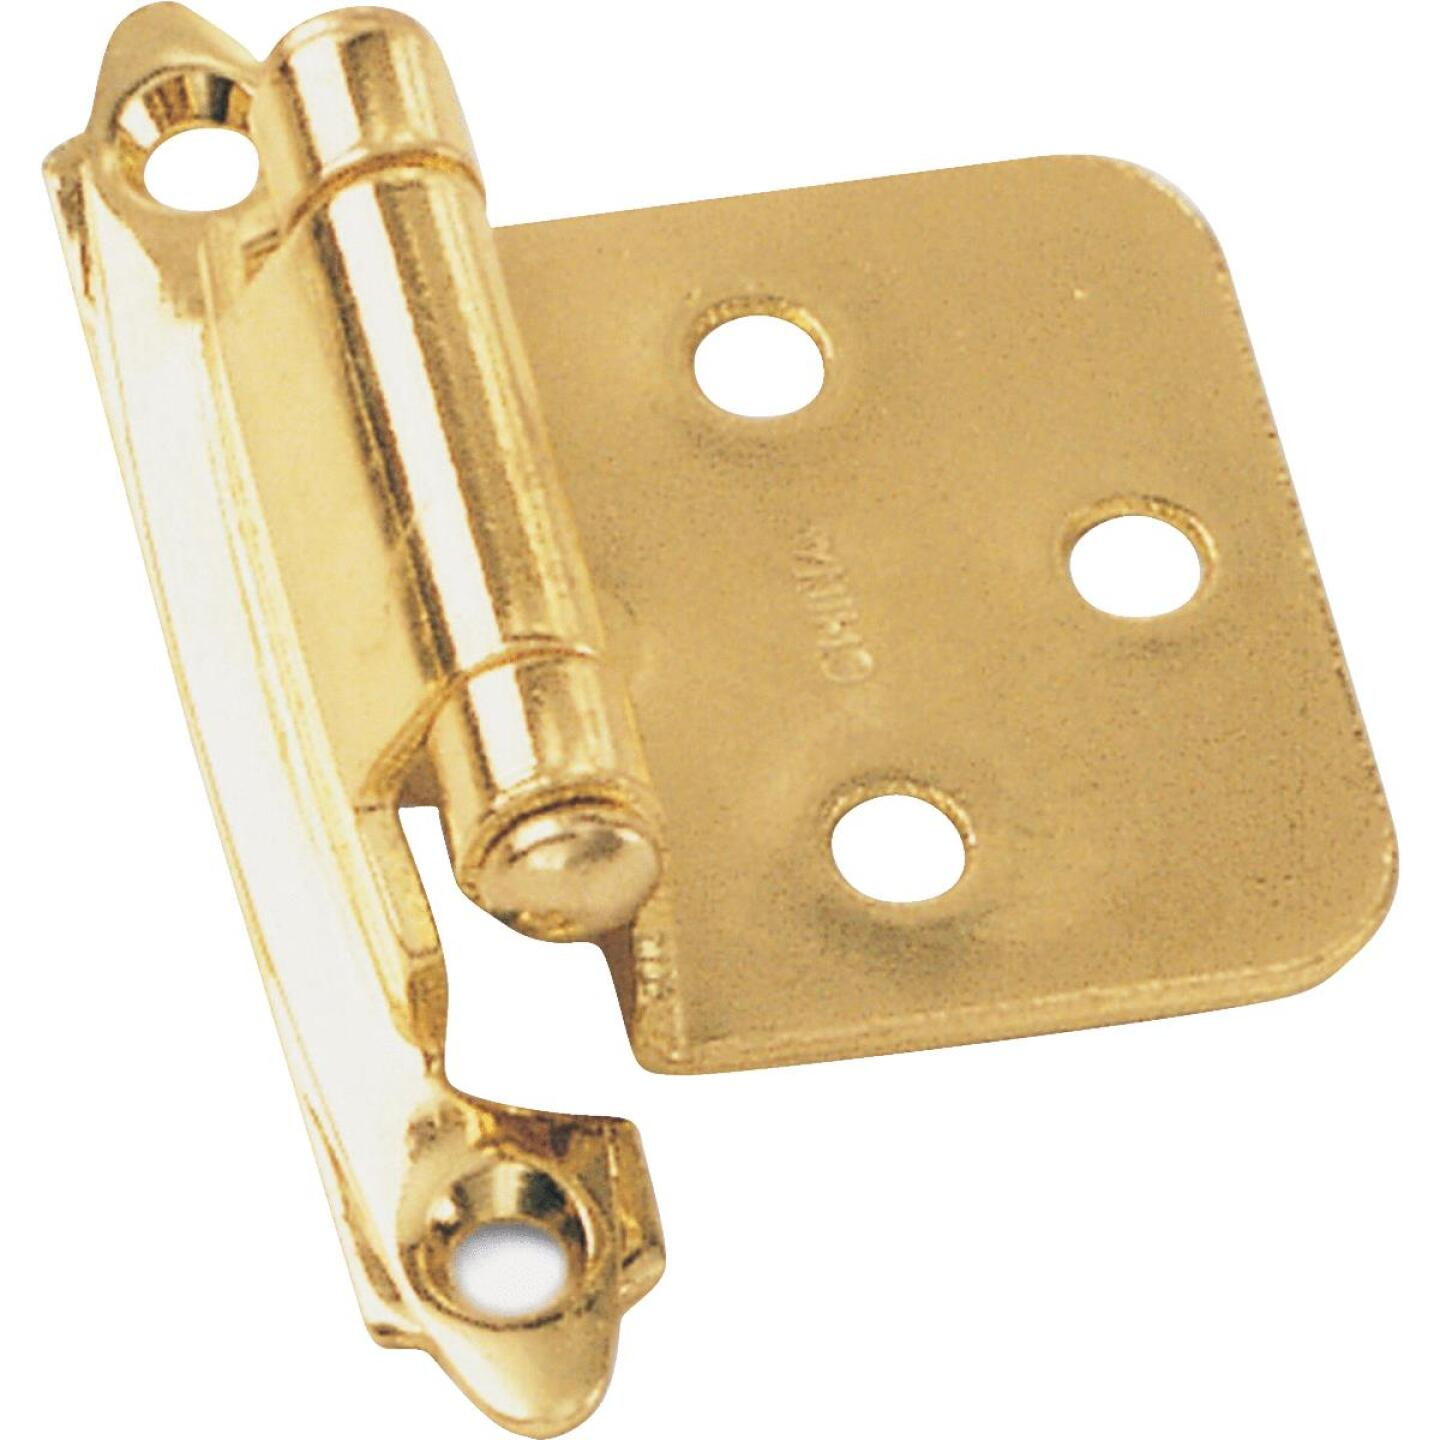 Laurey Polished Brass Self-Closing Overlay Hinge with Wood Screws (2-Pack) Image 1